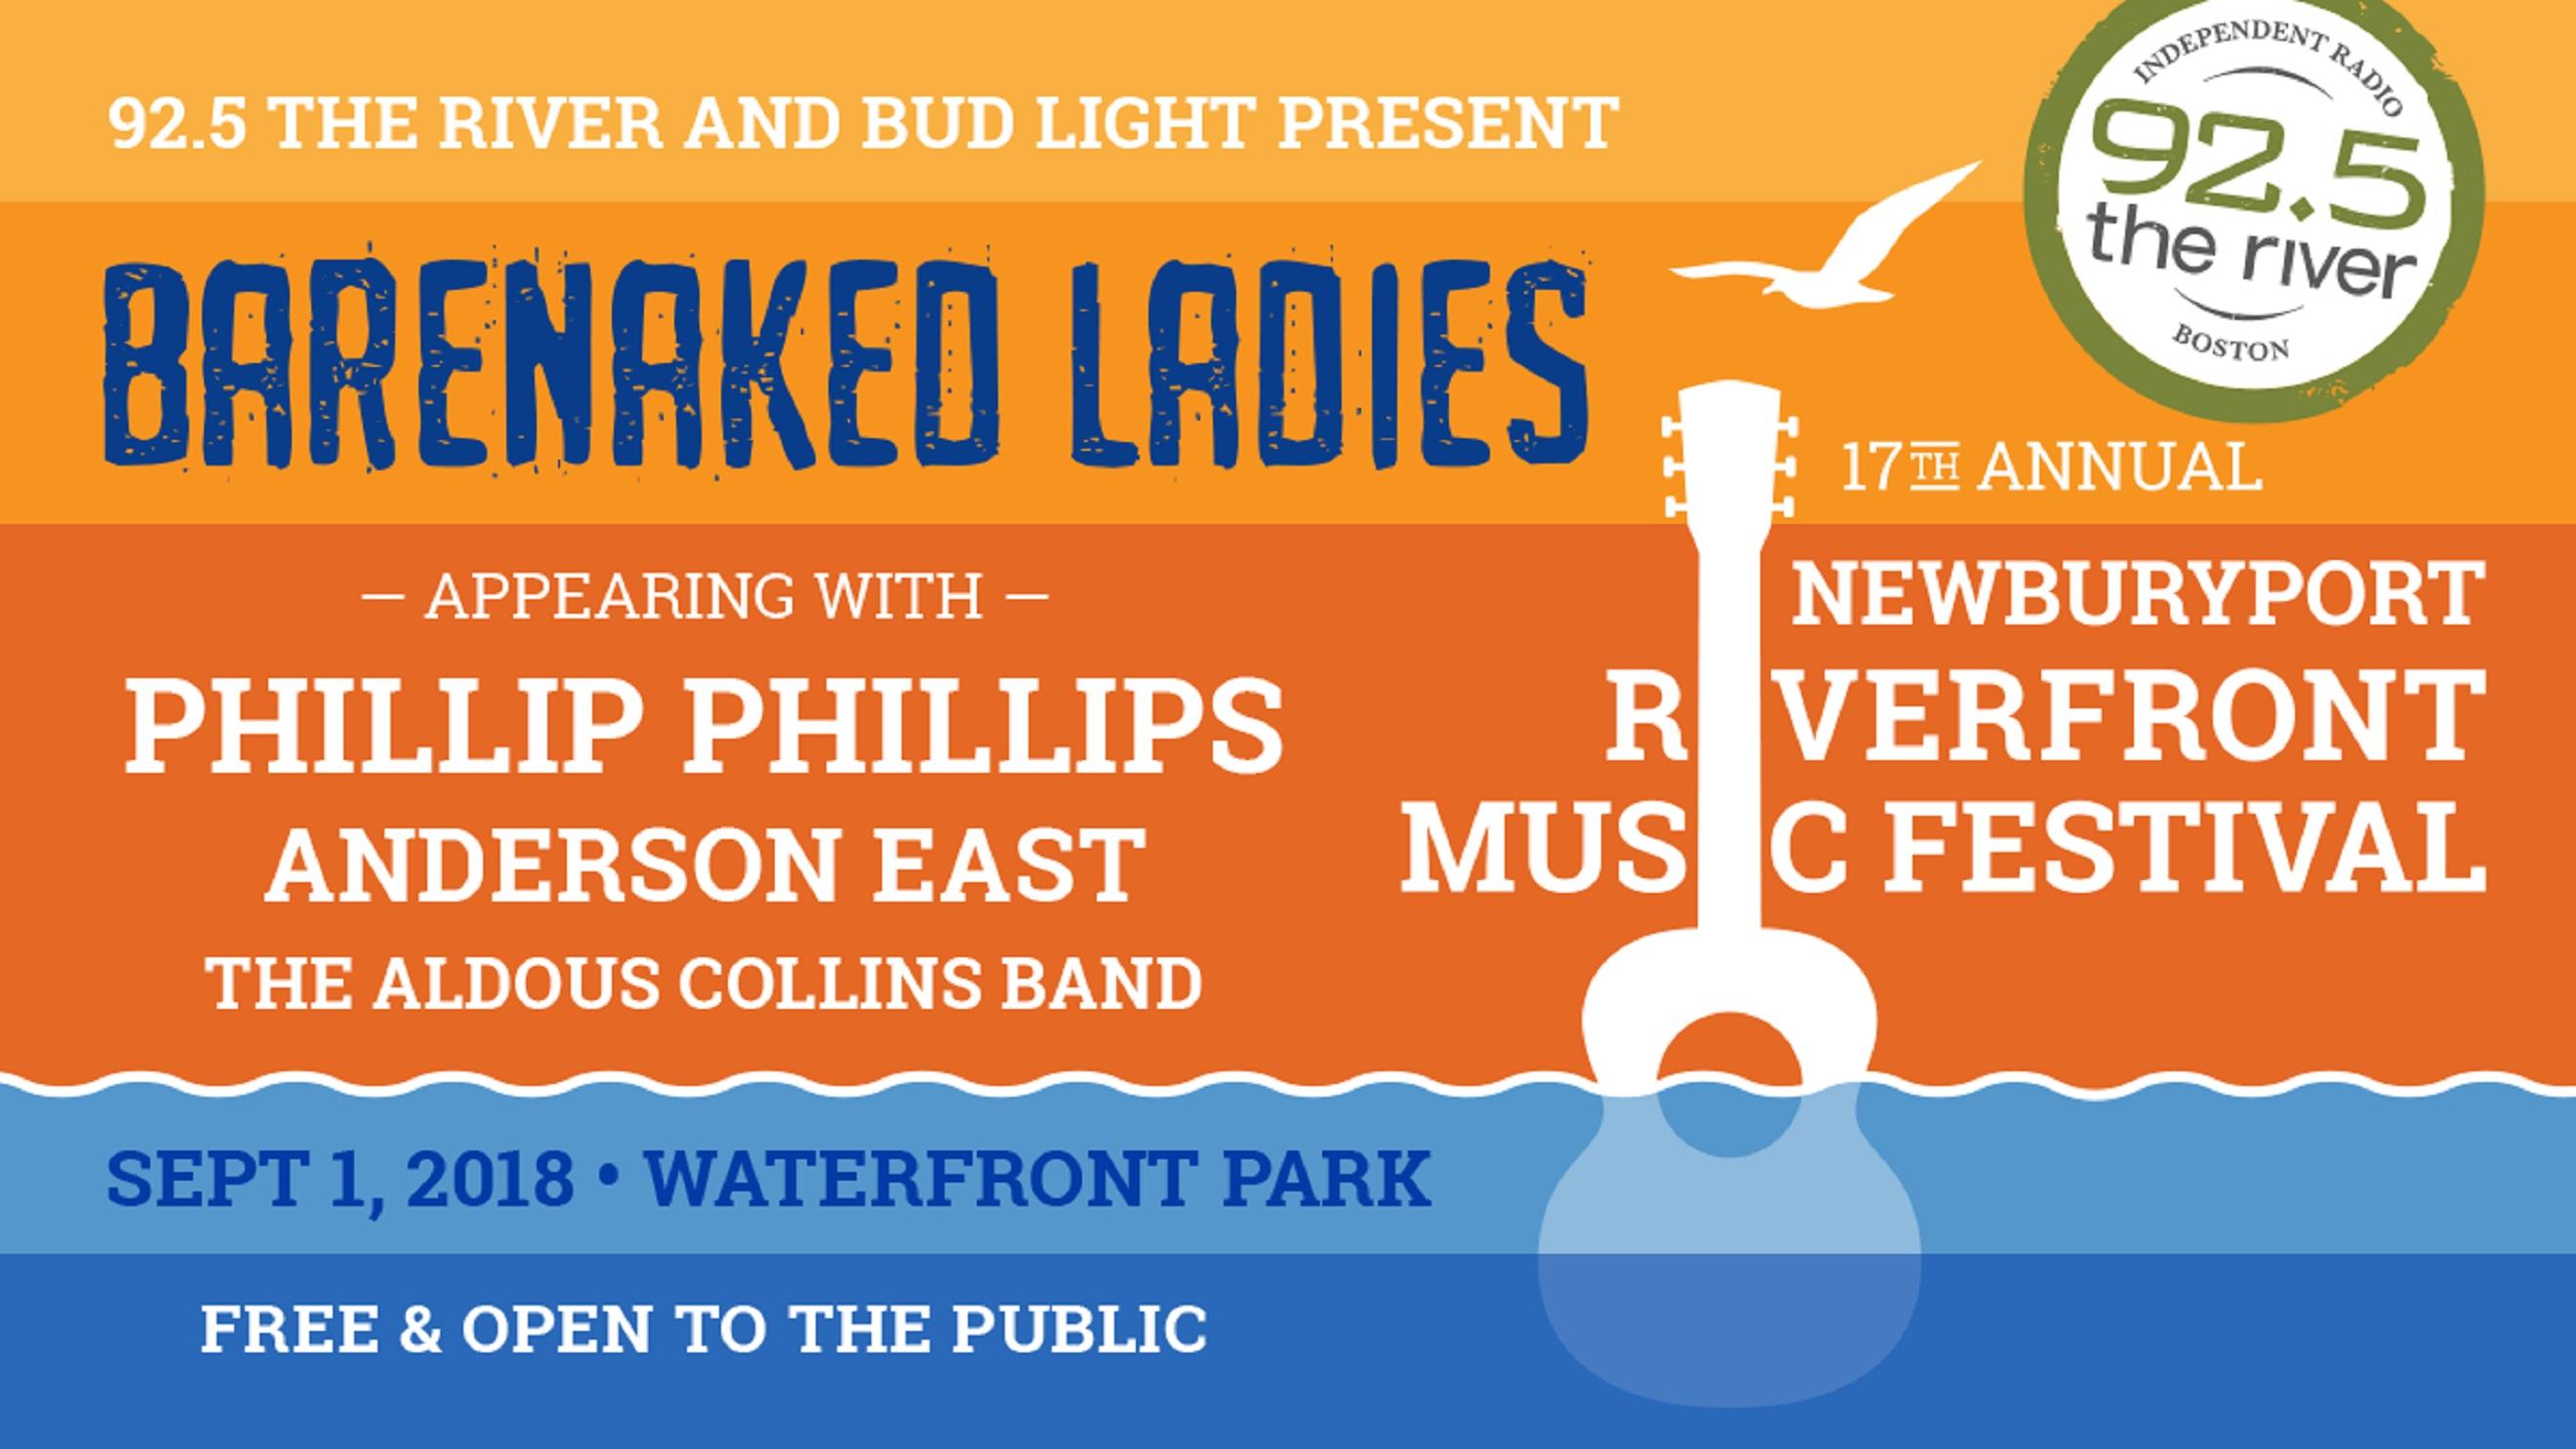 Barenaked Ladies to headline The River's Free 17th Annual Newburyport Riverfront Music Festival